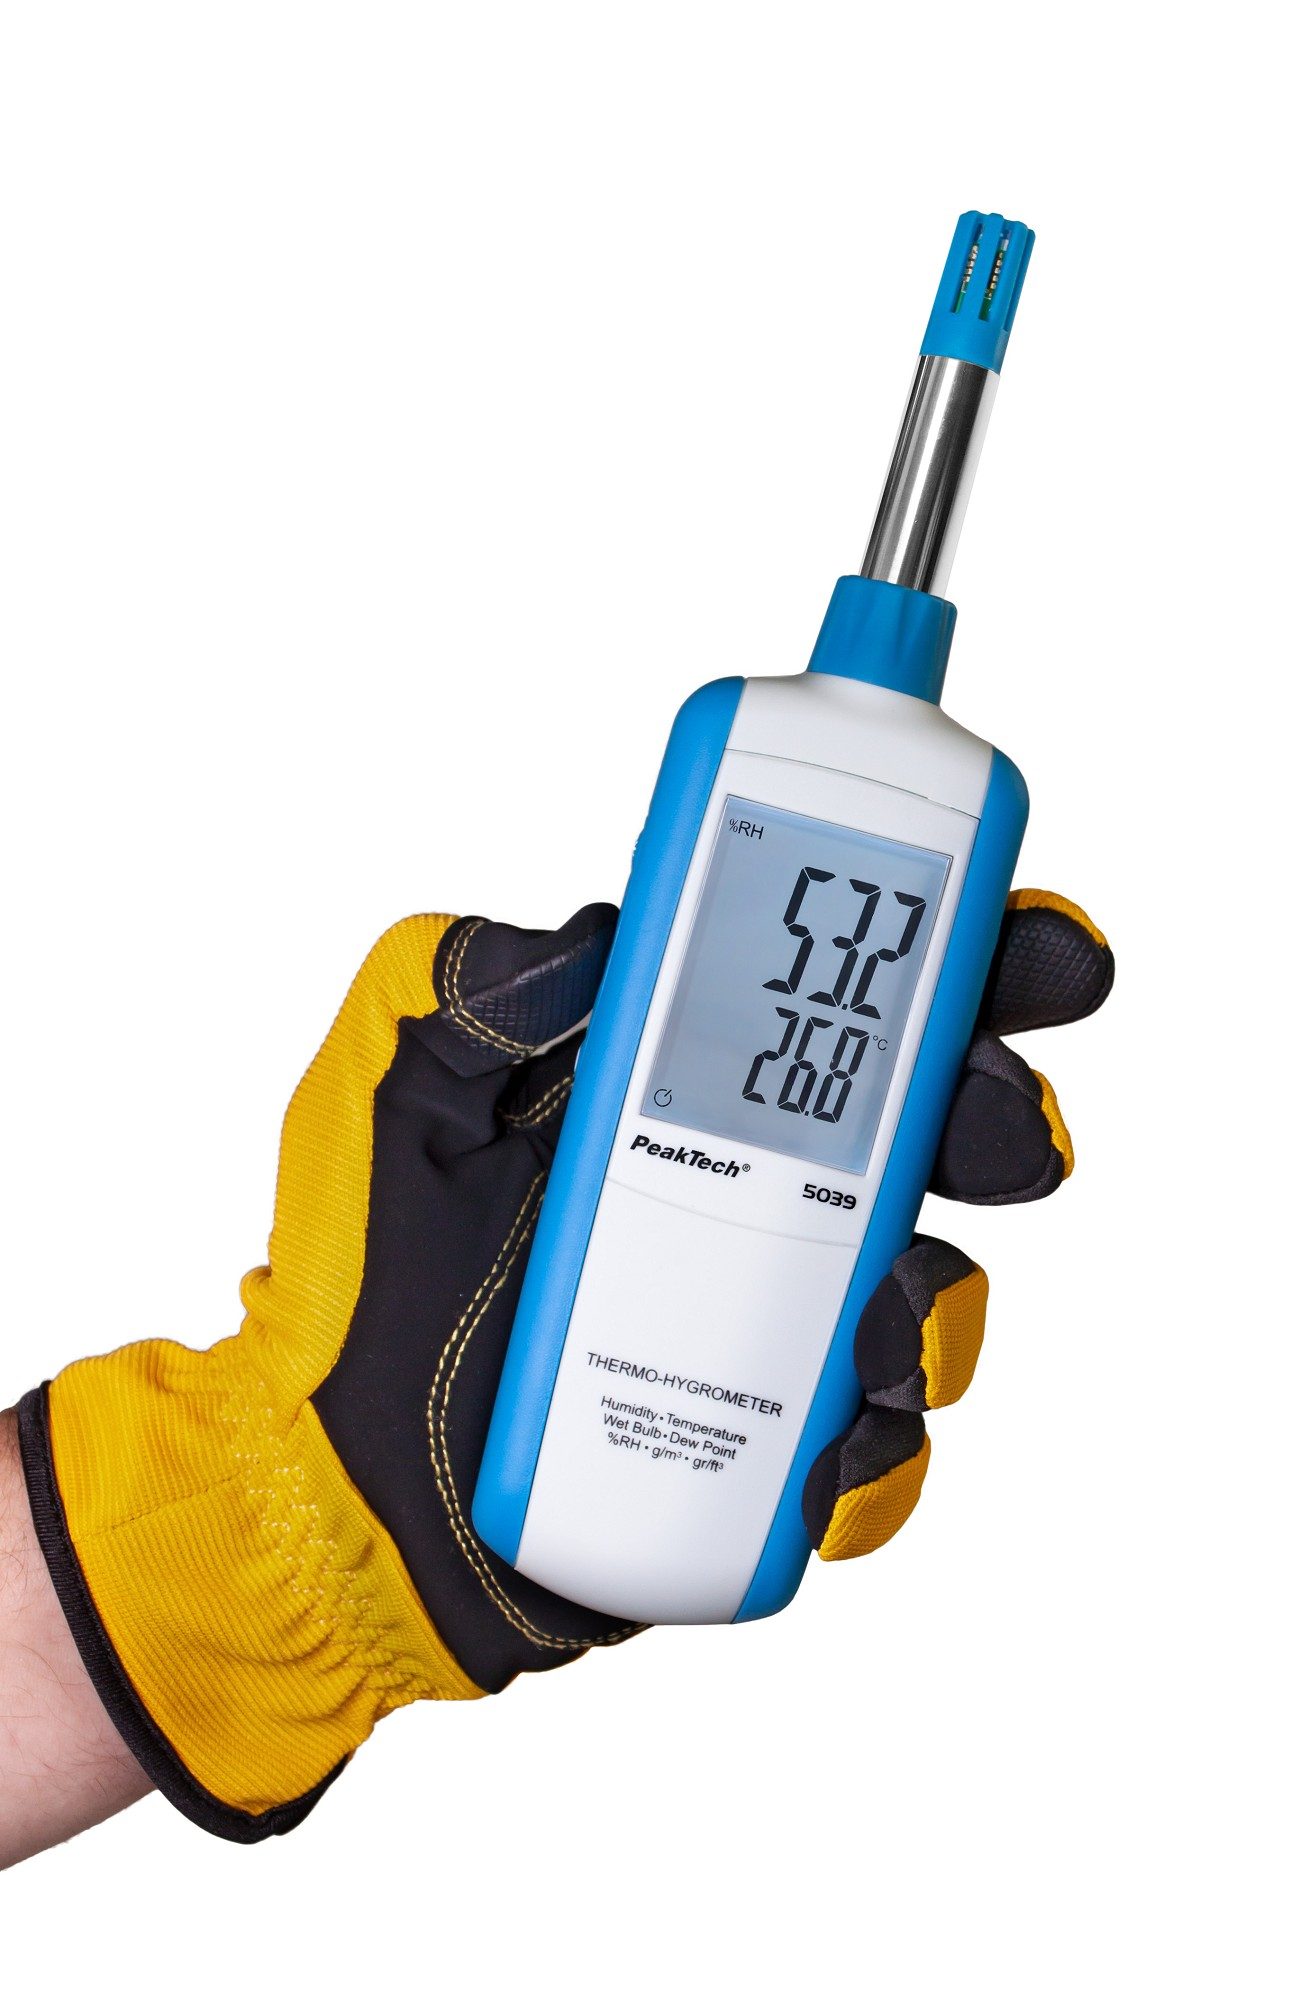 «PeakTech® P 5039» Thermo-hygrometer with dew point and wet bulb